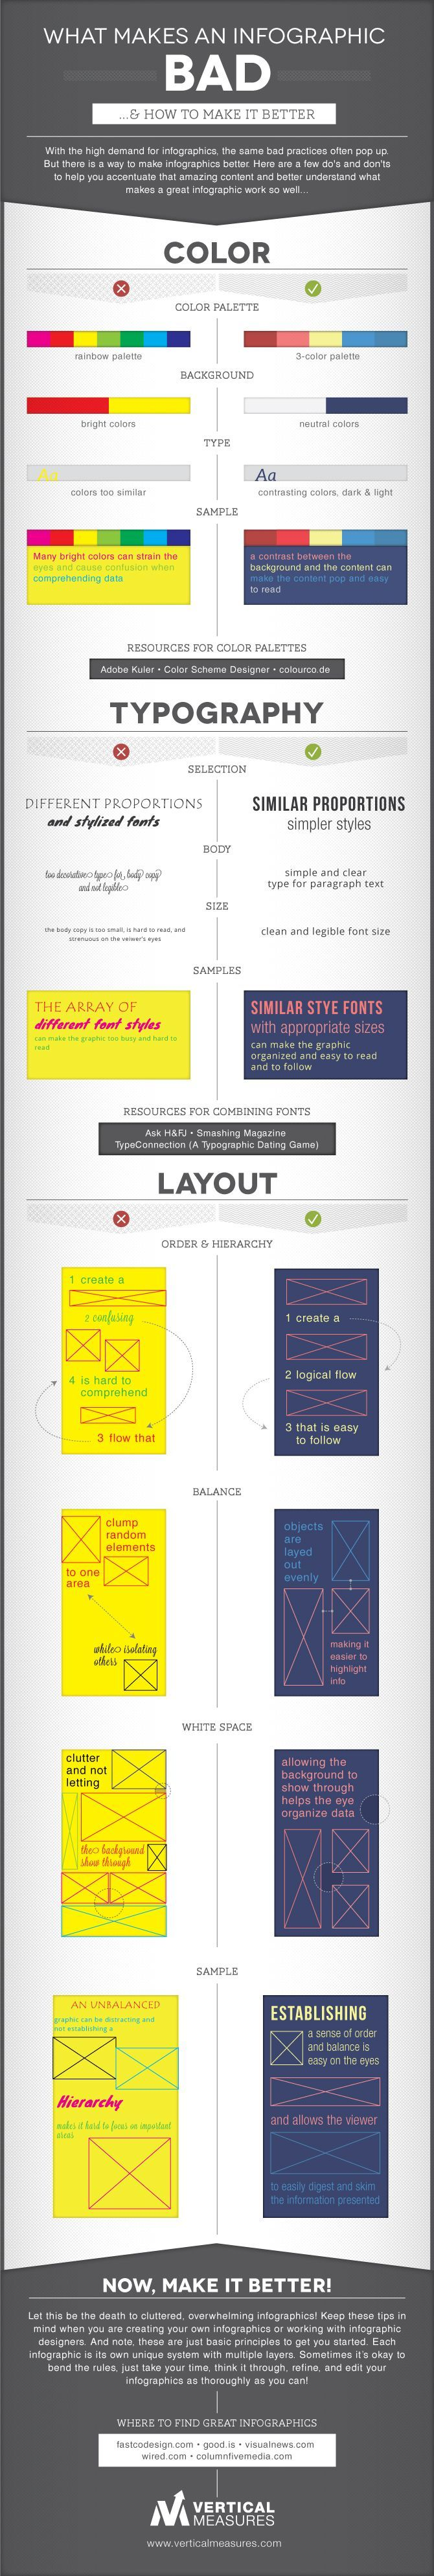 What Makes An Infographic Bad & How To Make It Better [INFOGRAPHIC]